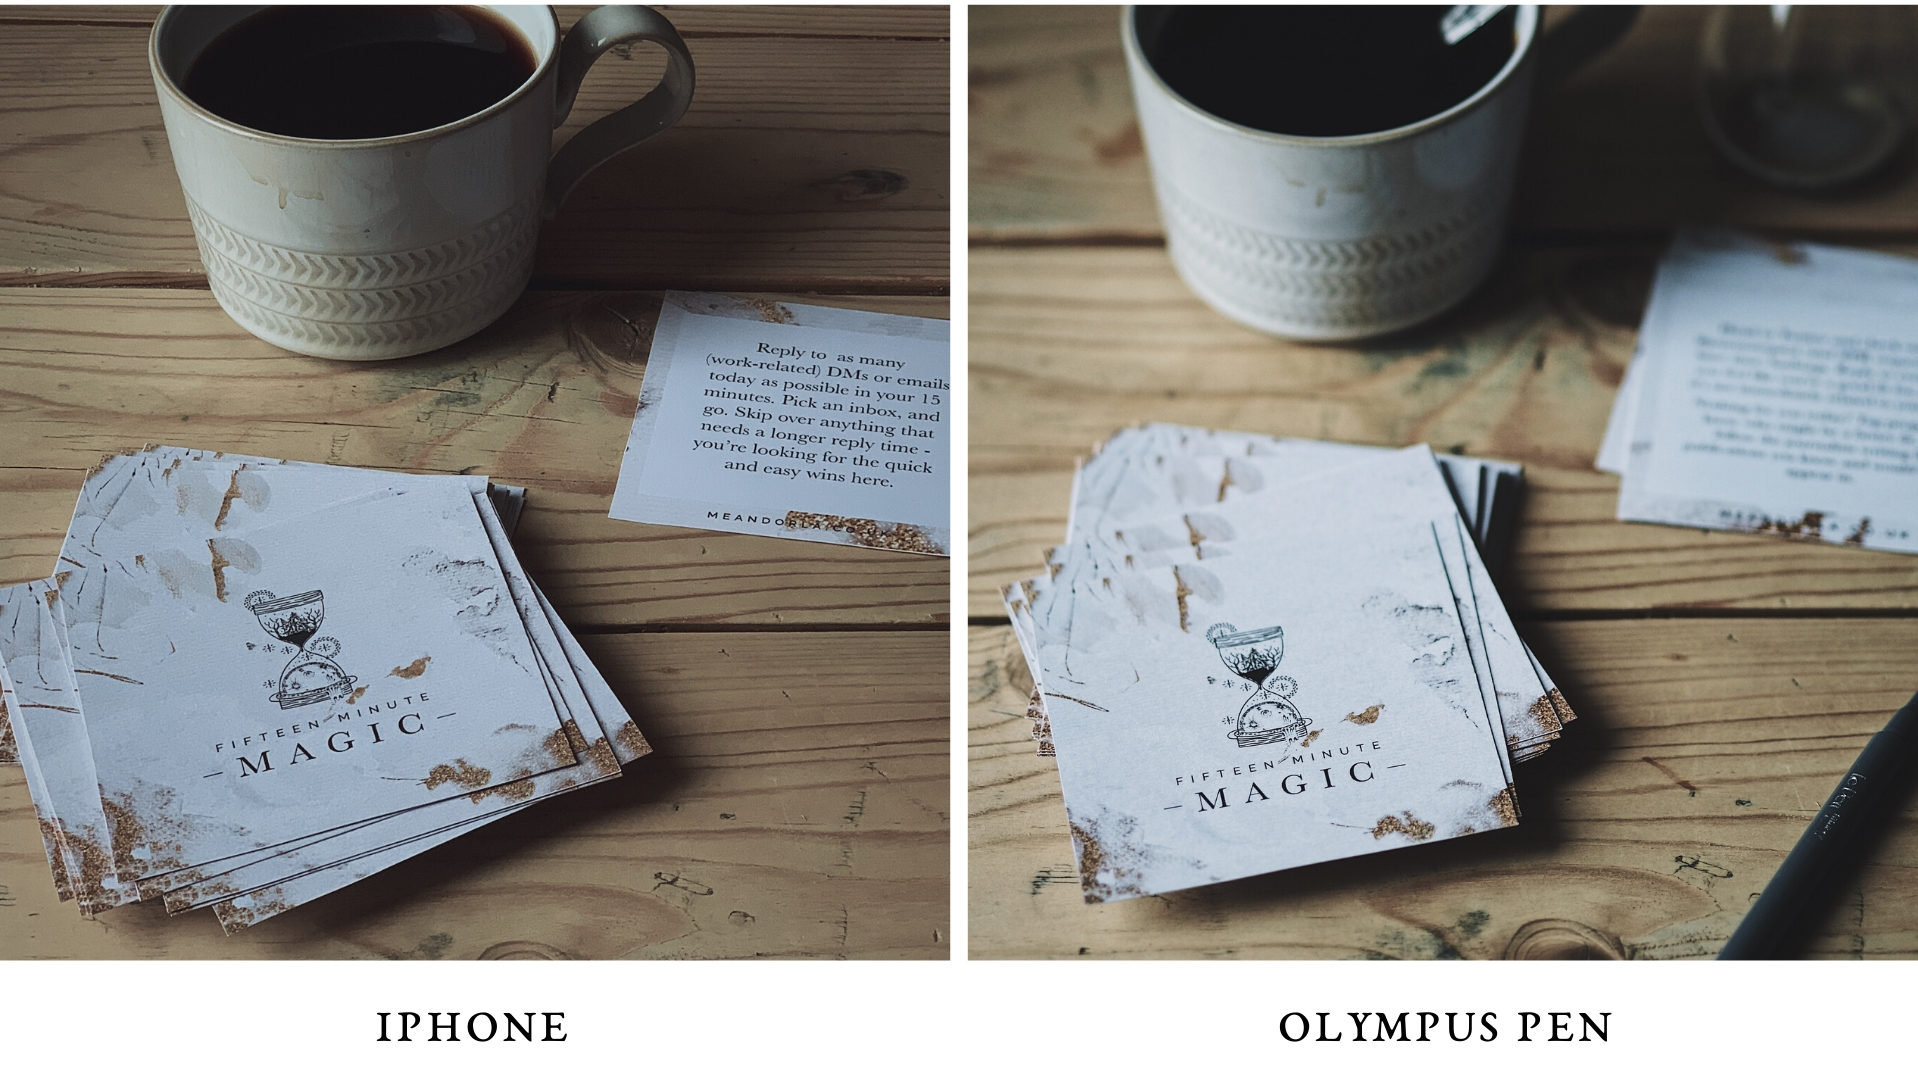 15 Minute Magic cards - iPhone Olympus PEN comparison photo